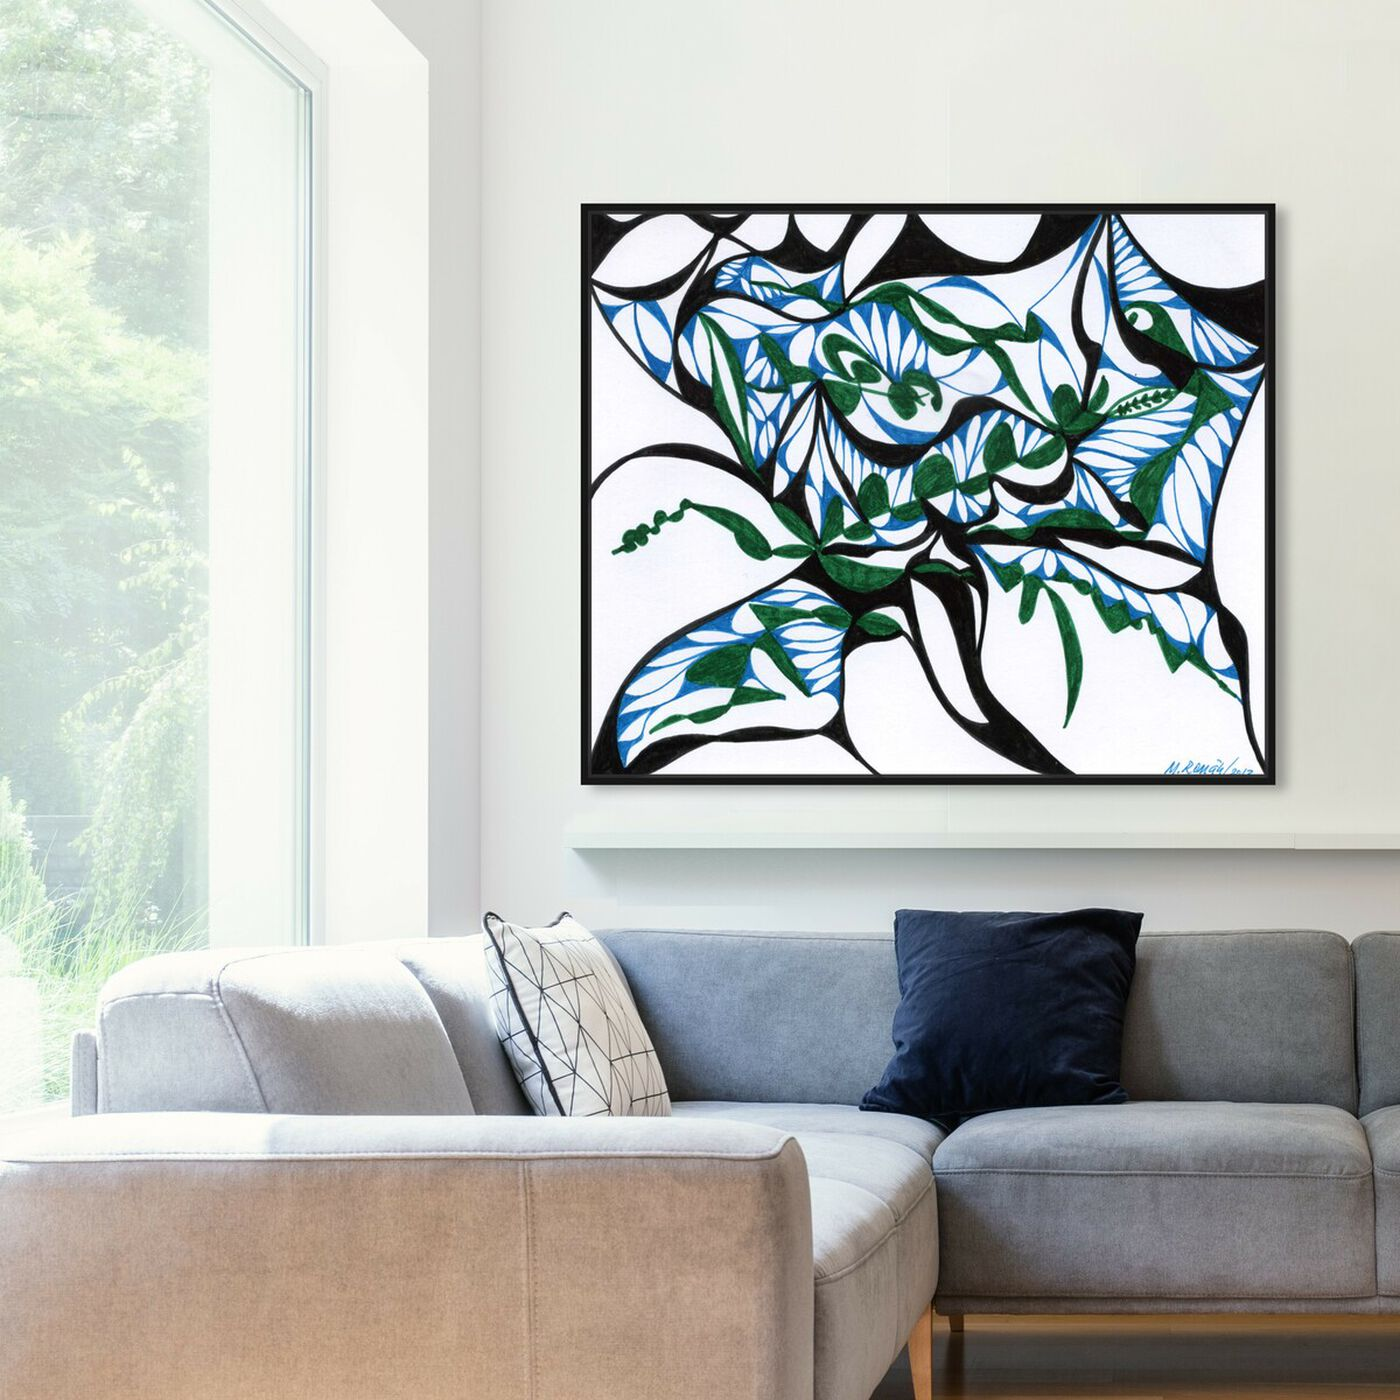 Hanging view of Swirling Ferns featuring abstract and geometric art.